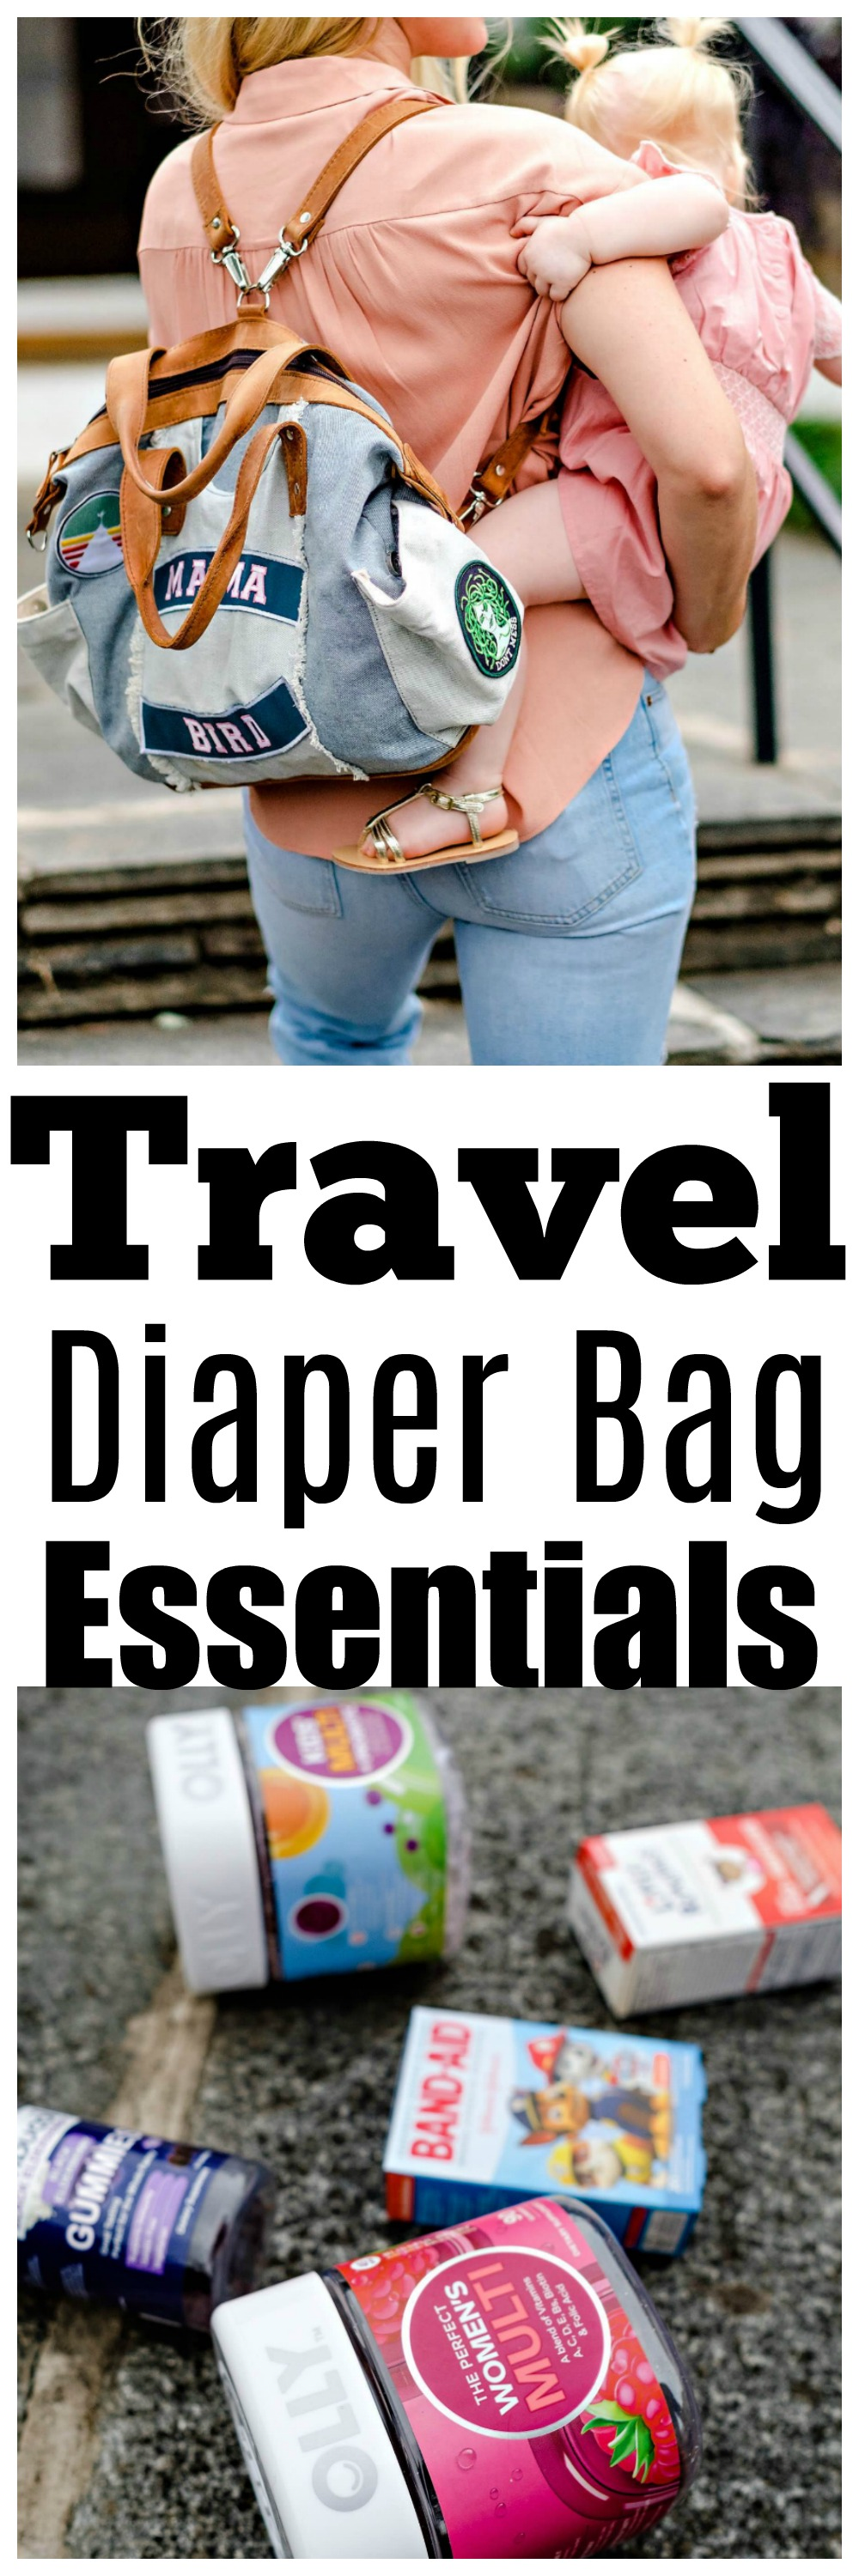 Travel Diaper Bag Essentials by Atlanta mom blogger Happily Hughes